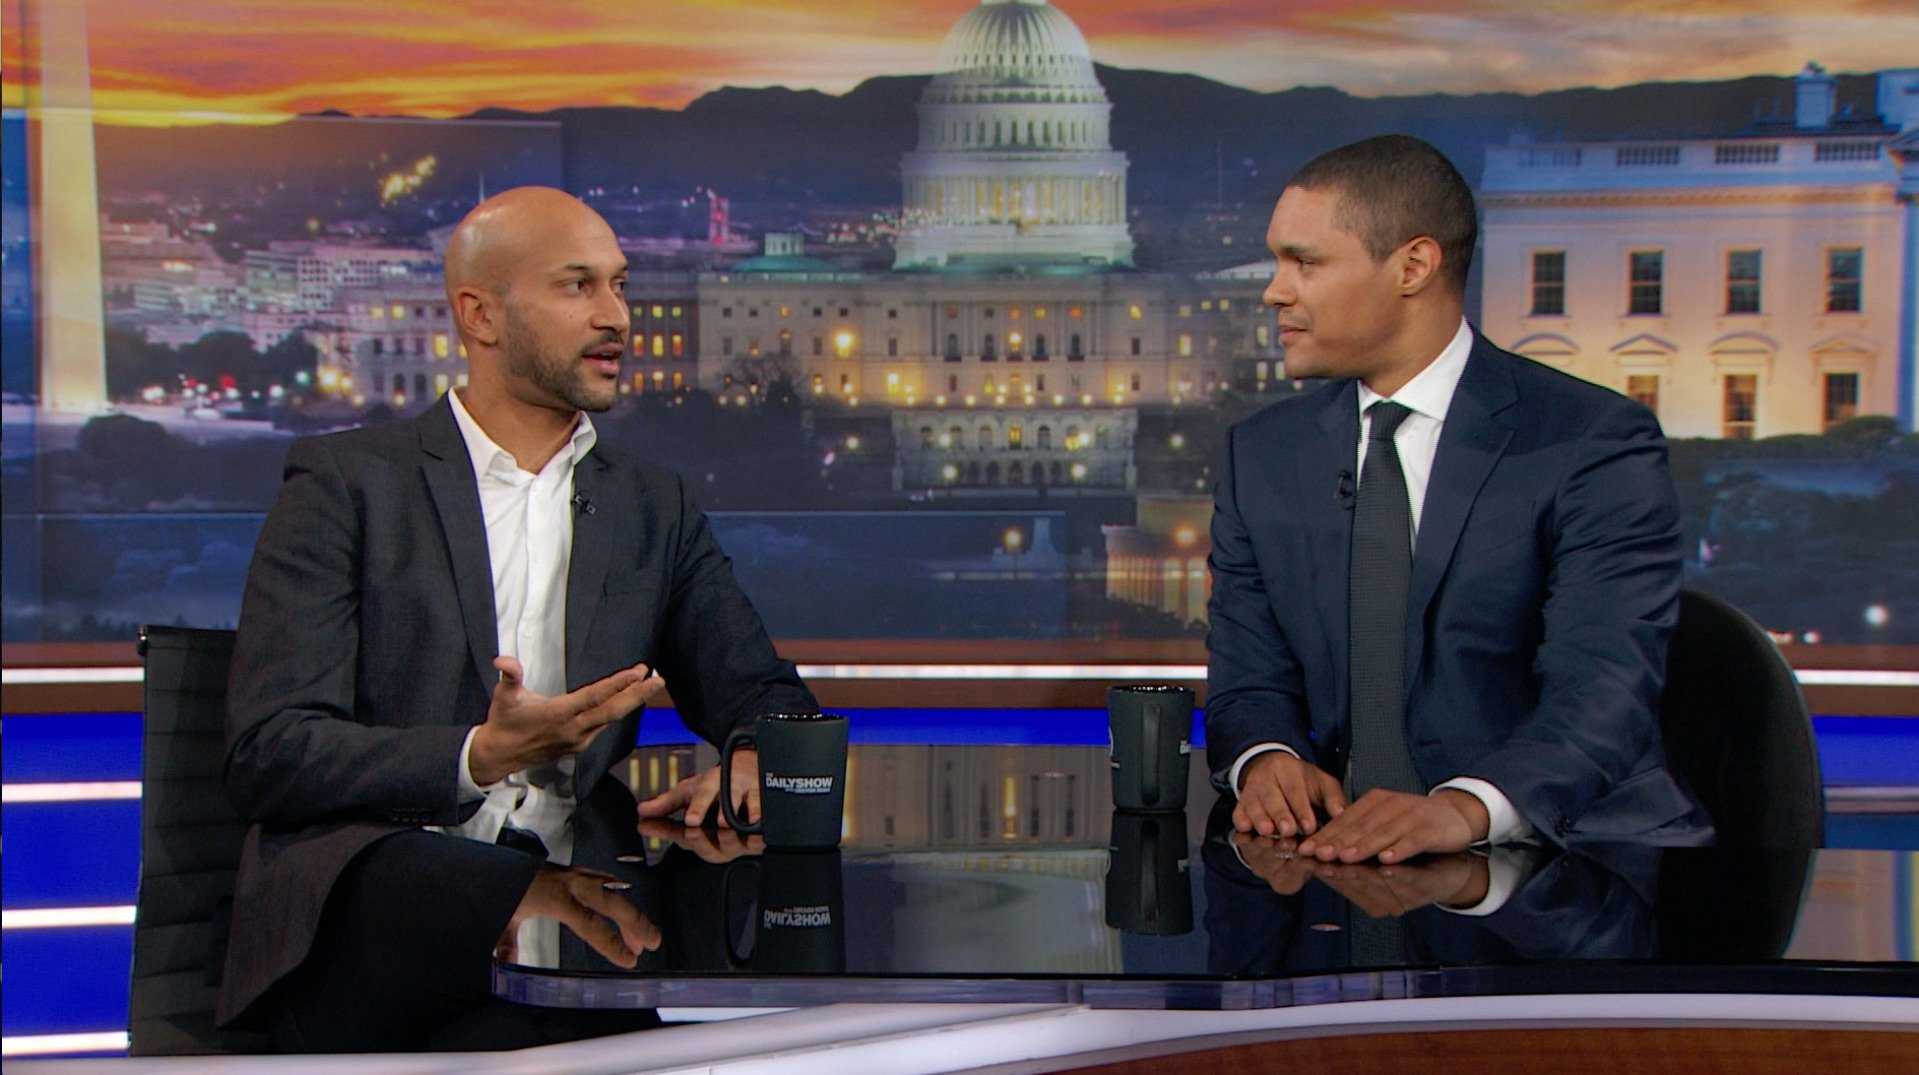 EXCLUSIVE: Tonight at 11/10c, Key and Peele return with one final address from President Obama and Luther, his anger translator. https://t.co/IoBsl5G08j